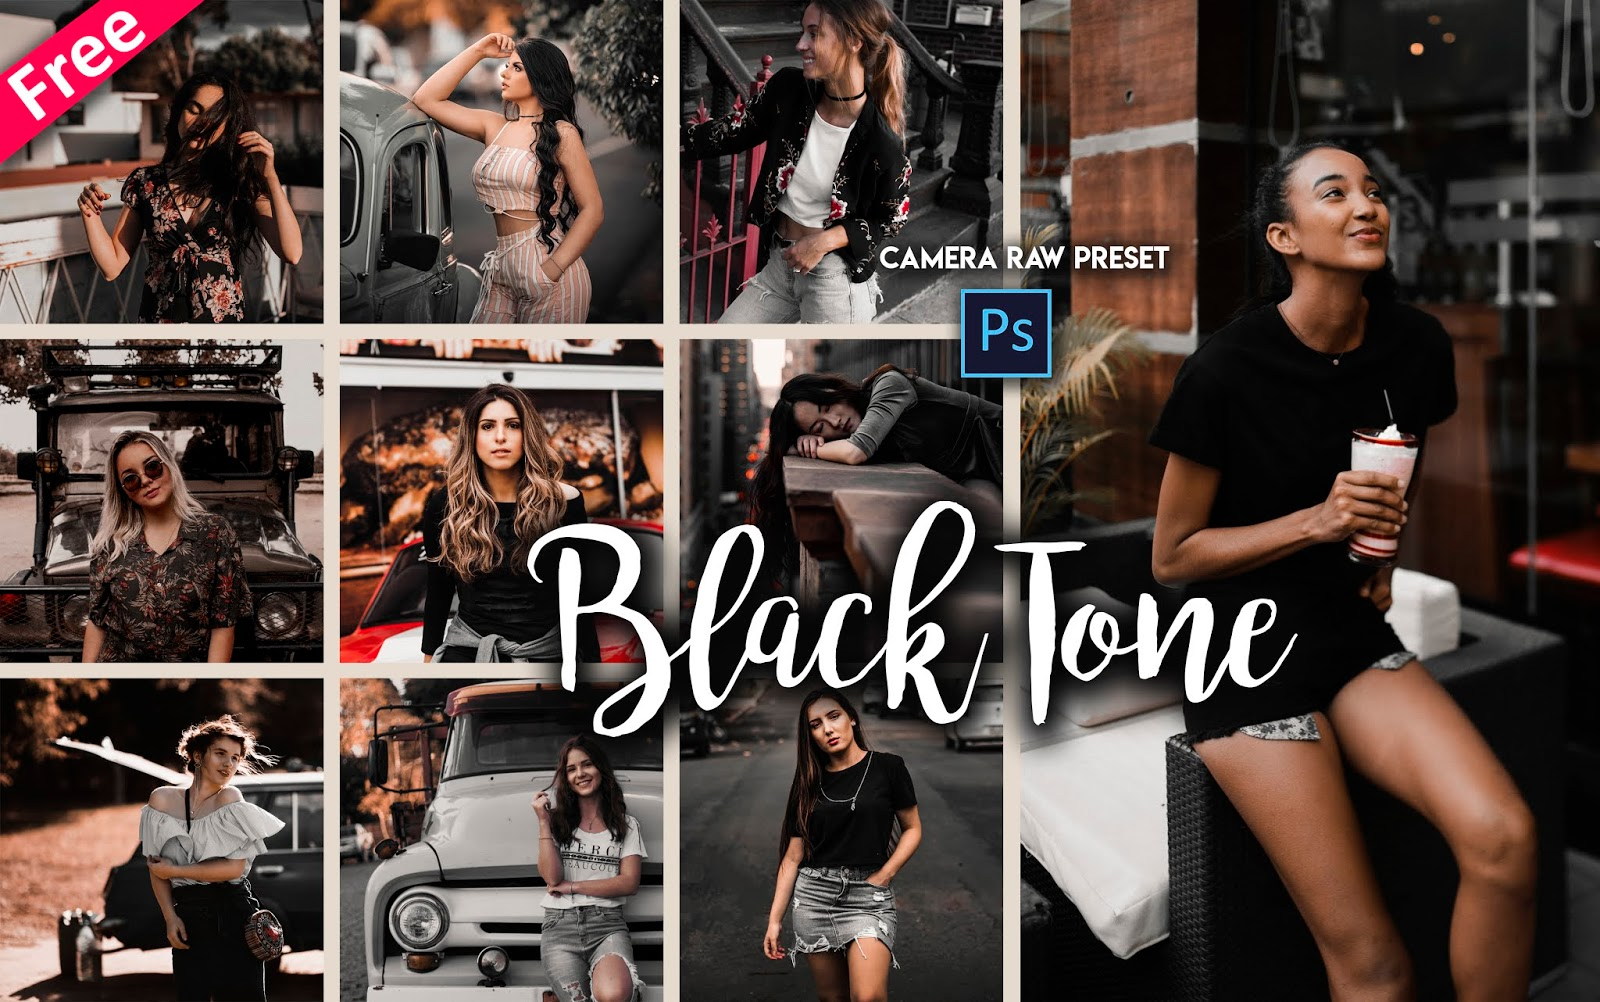 Download Black Tone Camera Raw Presets for Free | How to Make Black & Brown Photos in Photoshop cc